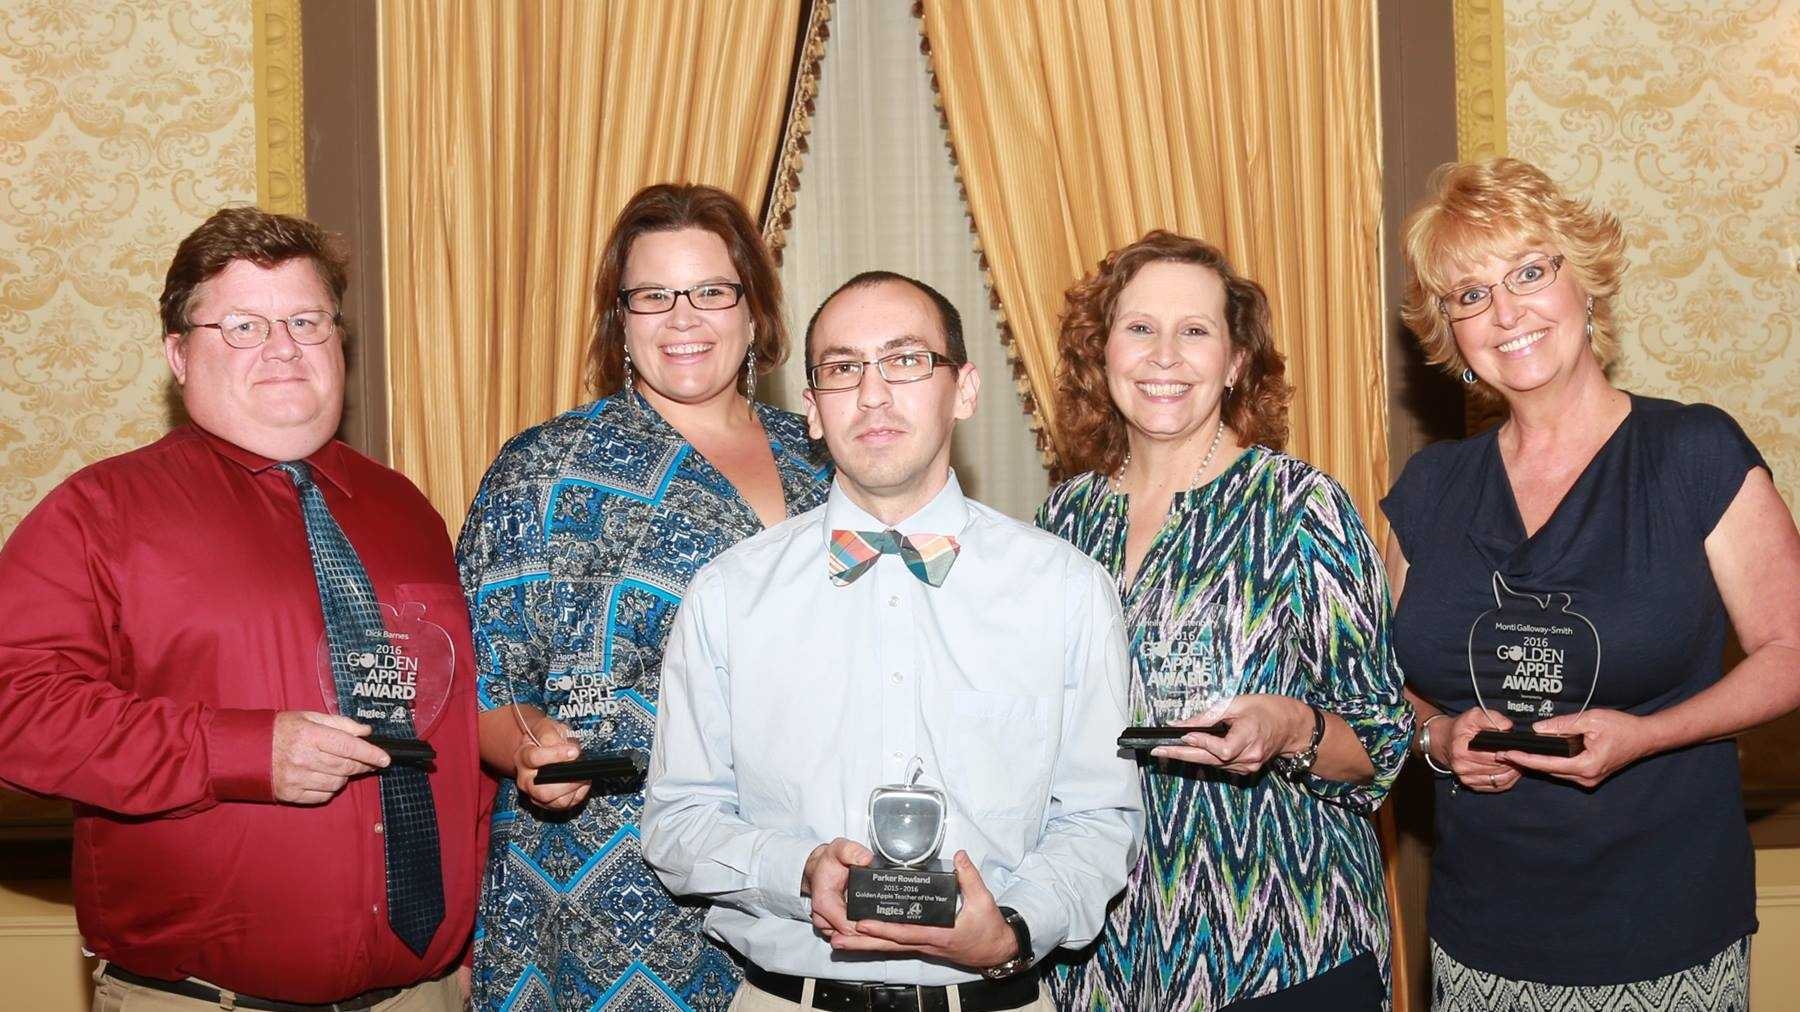 Teacher of the Year (center:) Parker Rowland - Monaview Elementary School, Greenville&#x3B; Dick Barnes - Spartanburg Day School, Spartanburg&#x3B; Jennifer Christenbury - Flat Rock Elementary, Anderson&#x3B; Monti Galloway-Smith - Hillcrest Middle School, Simpsonville&#x3B; Hope Petrillo - Riverside Middle School, Pendleton